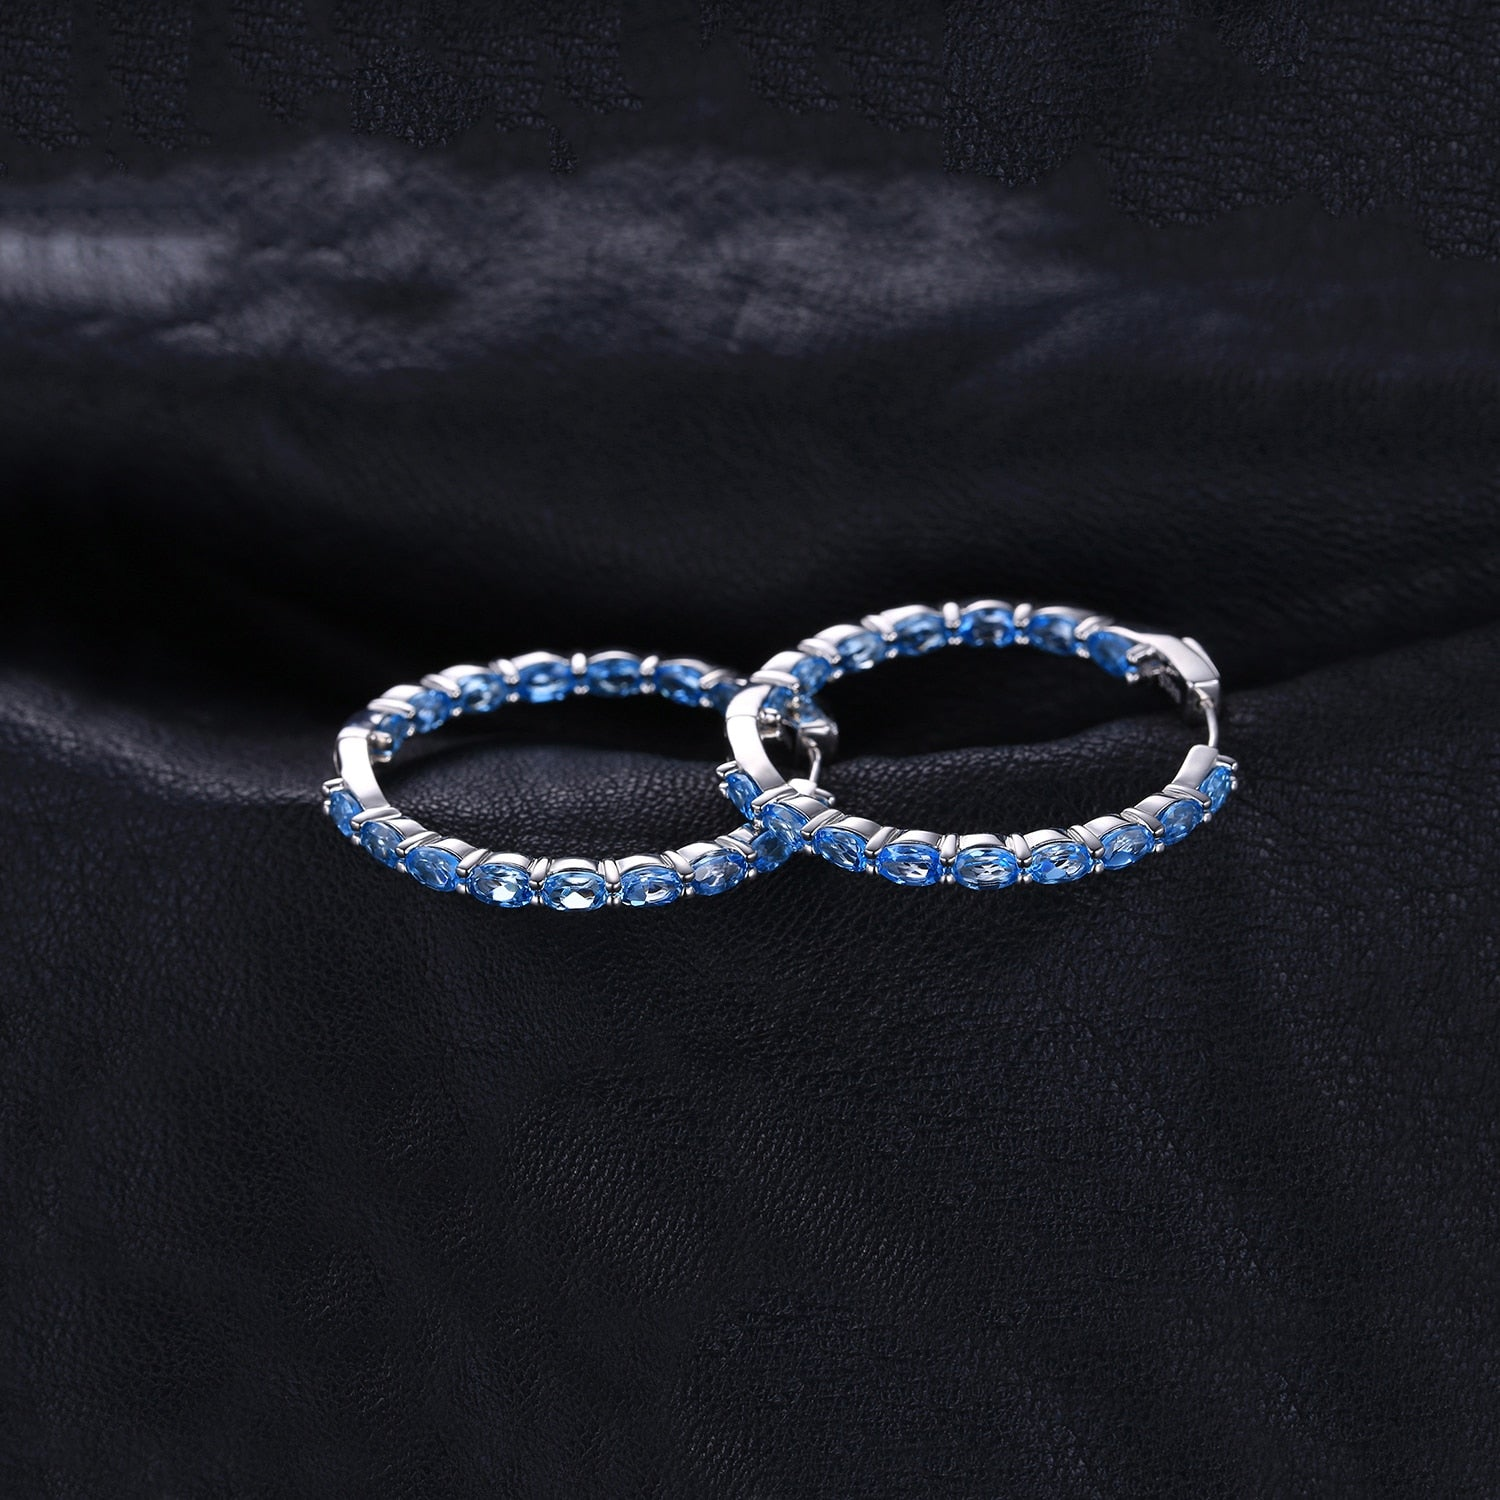 Genuine Swisss Blue Topaz Hoop Earrings - RHEA LIGHT